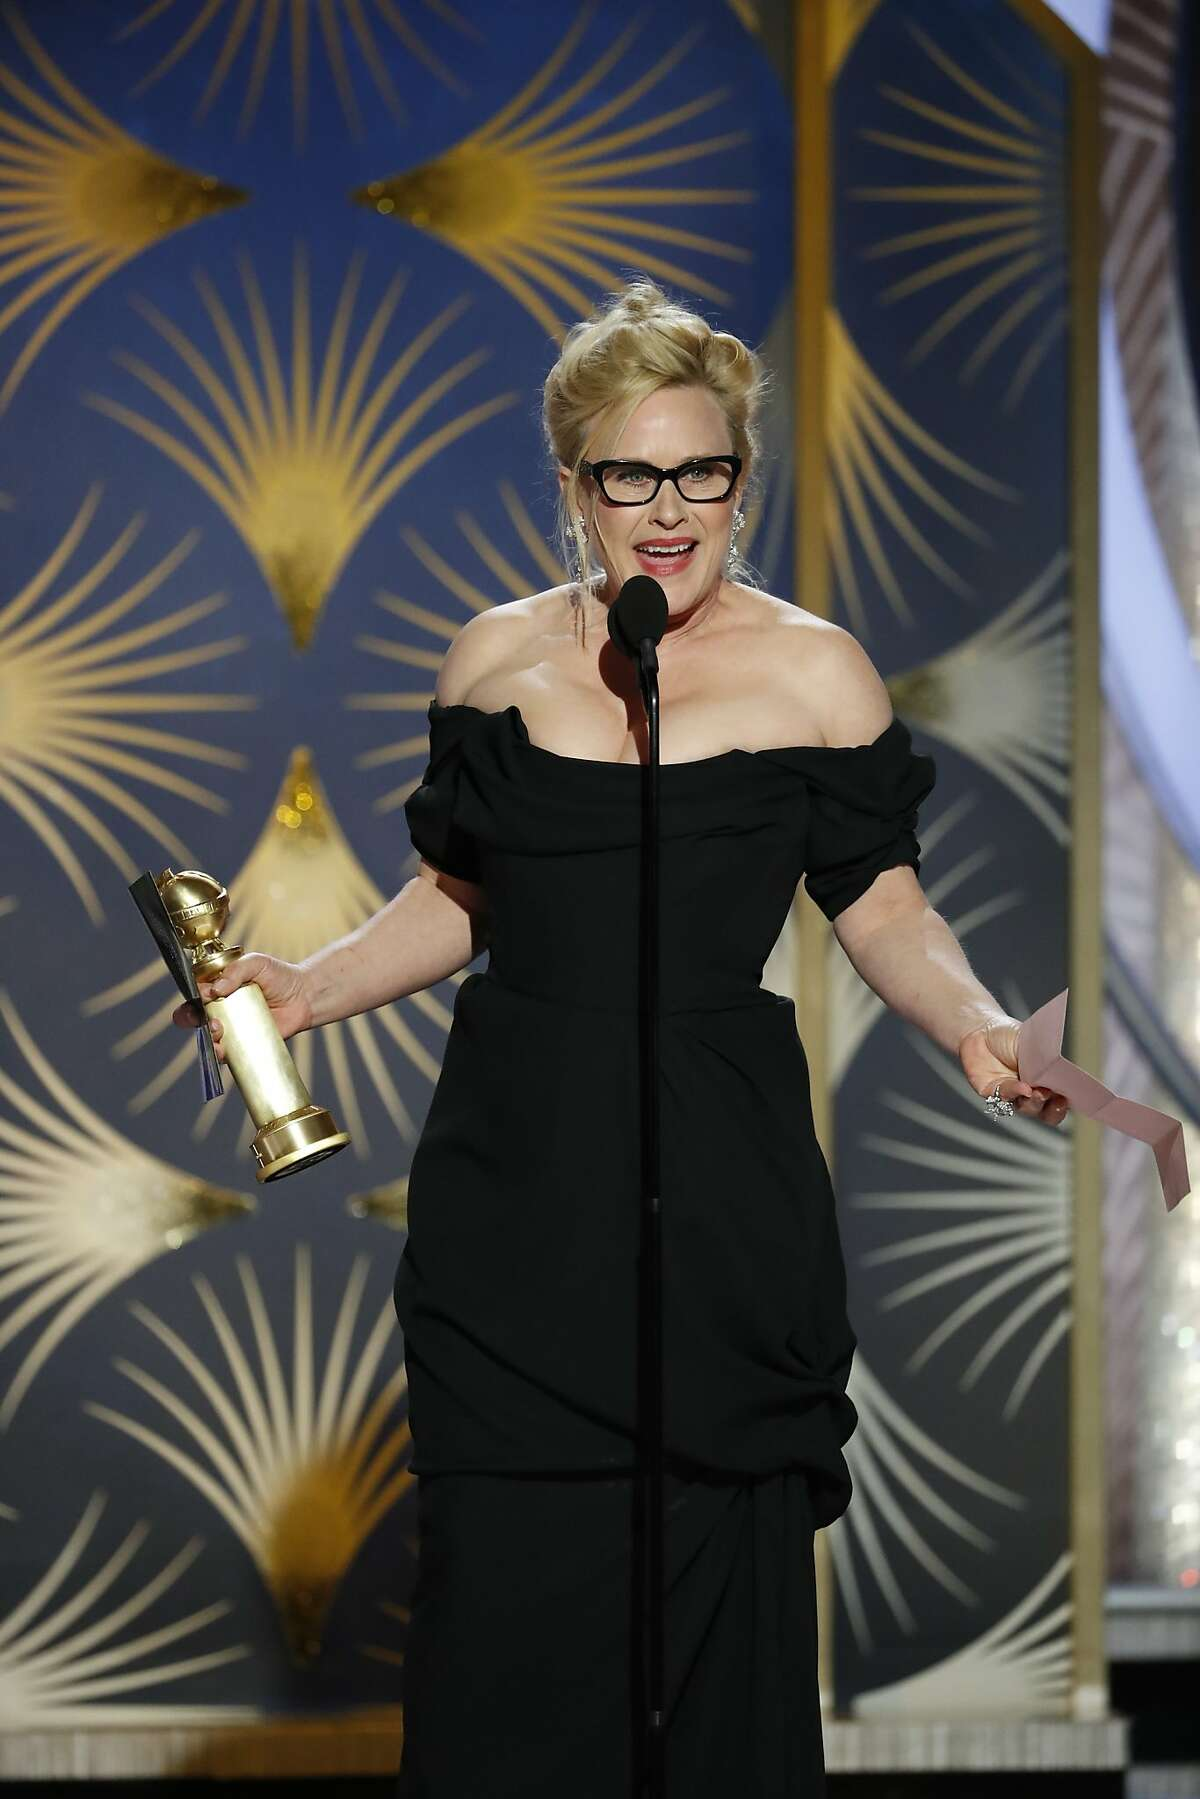 BEVERLY HILLS, CALIFORNIA - JANUARY 06: In this handout photo provided by NBCUniversal, Patricia Arquette from Escape at Dannemora accepts the Best Performance by an Actress in a Limited Series or Motion Picture Made for Television award onstage during the 76th Annual Golden Globe Awards at The Beverly Hilton Hotel on January 06, 2019 in Beverly Hills, California. (Photo by Paul Drinkwater/NBCUniversal via Getty Images)